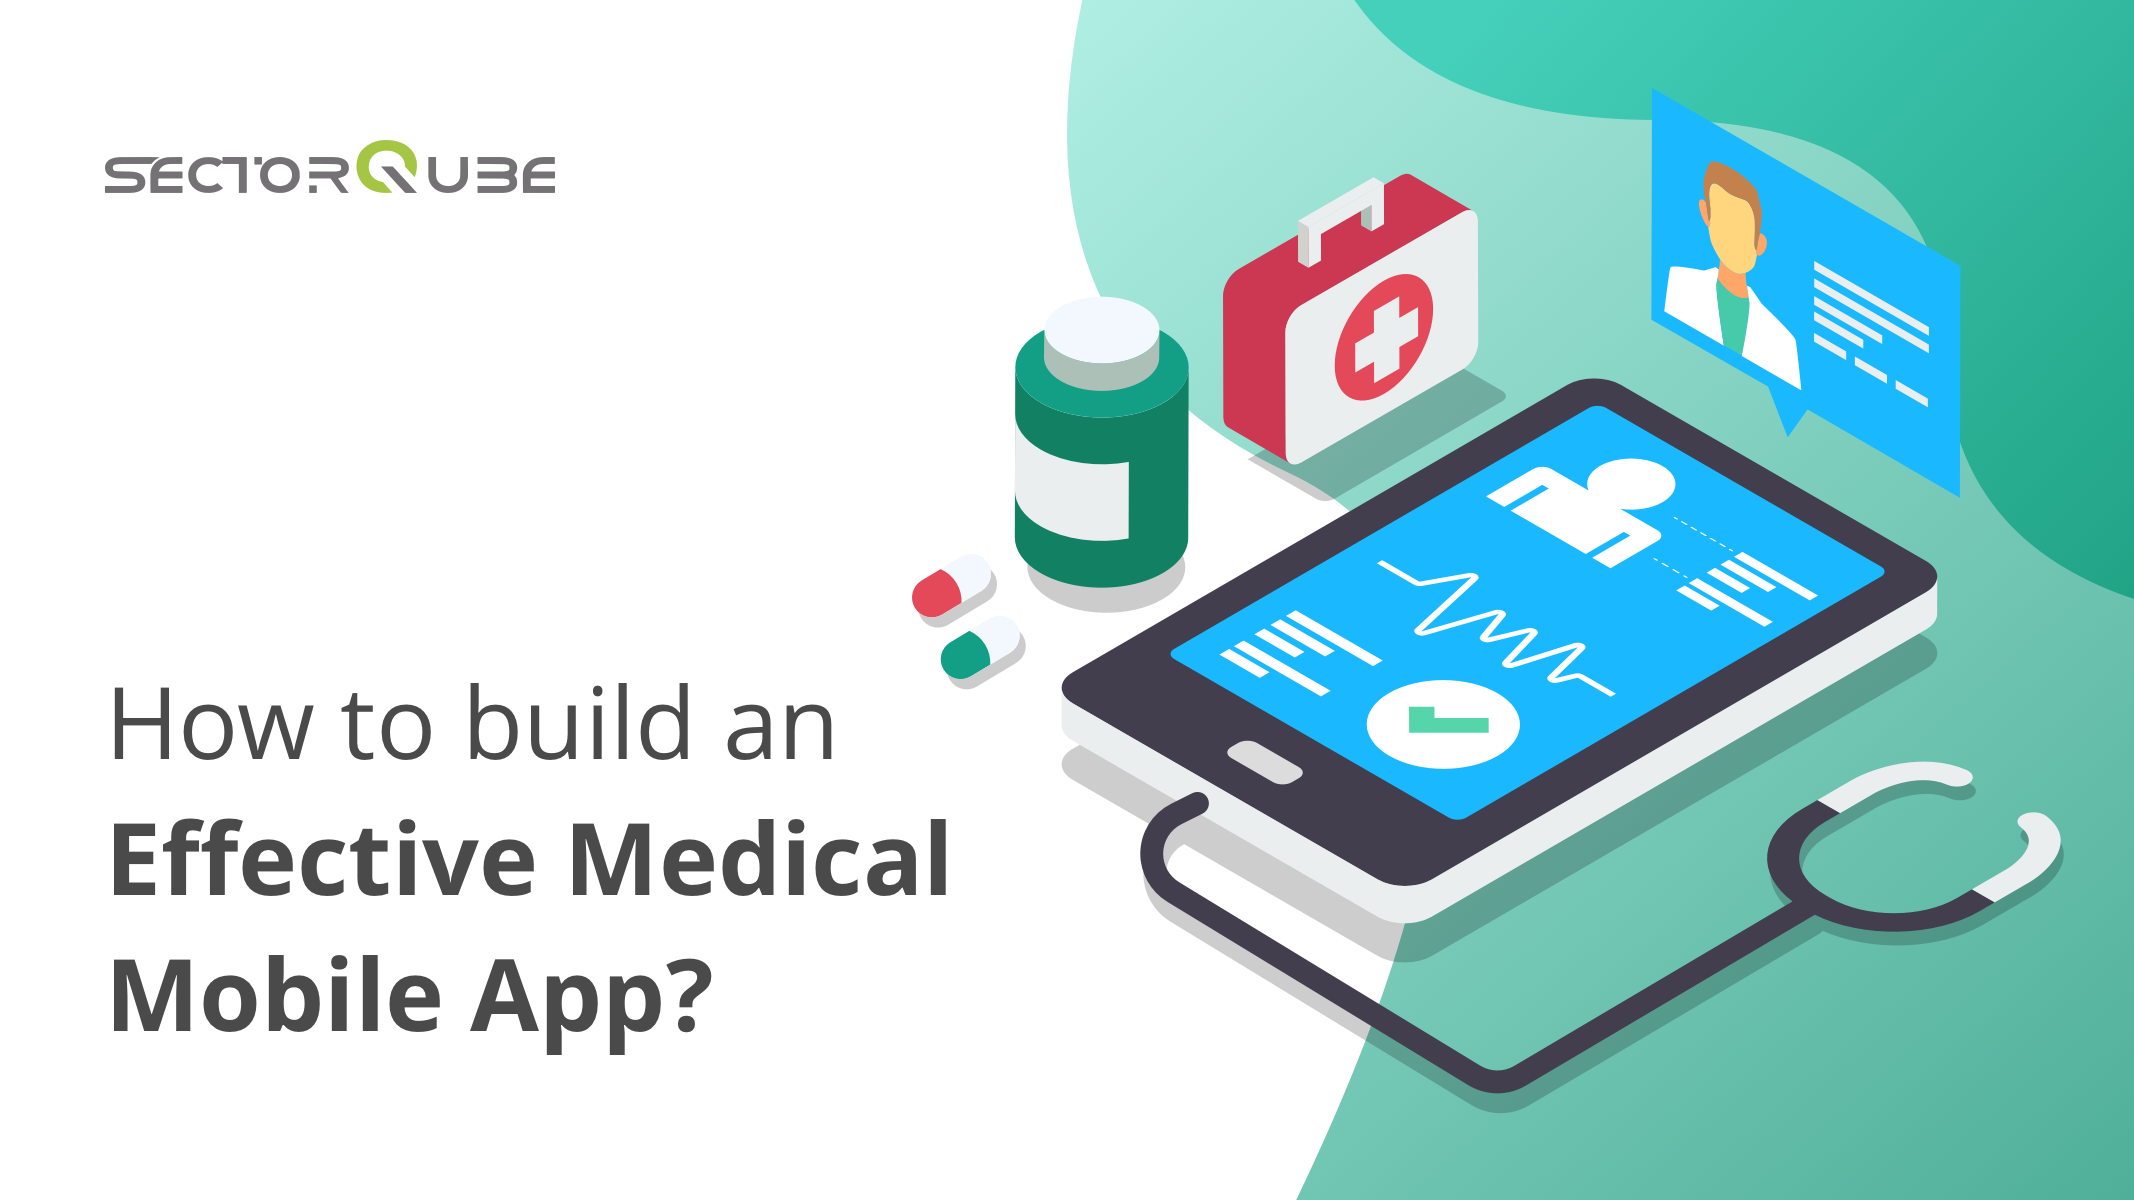 HOW TO BUILD AN EFFECTIVE MEDICAL MOBILE APP?